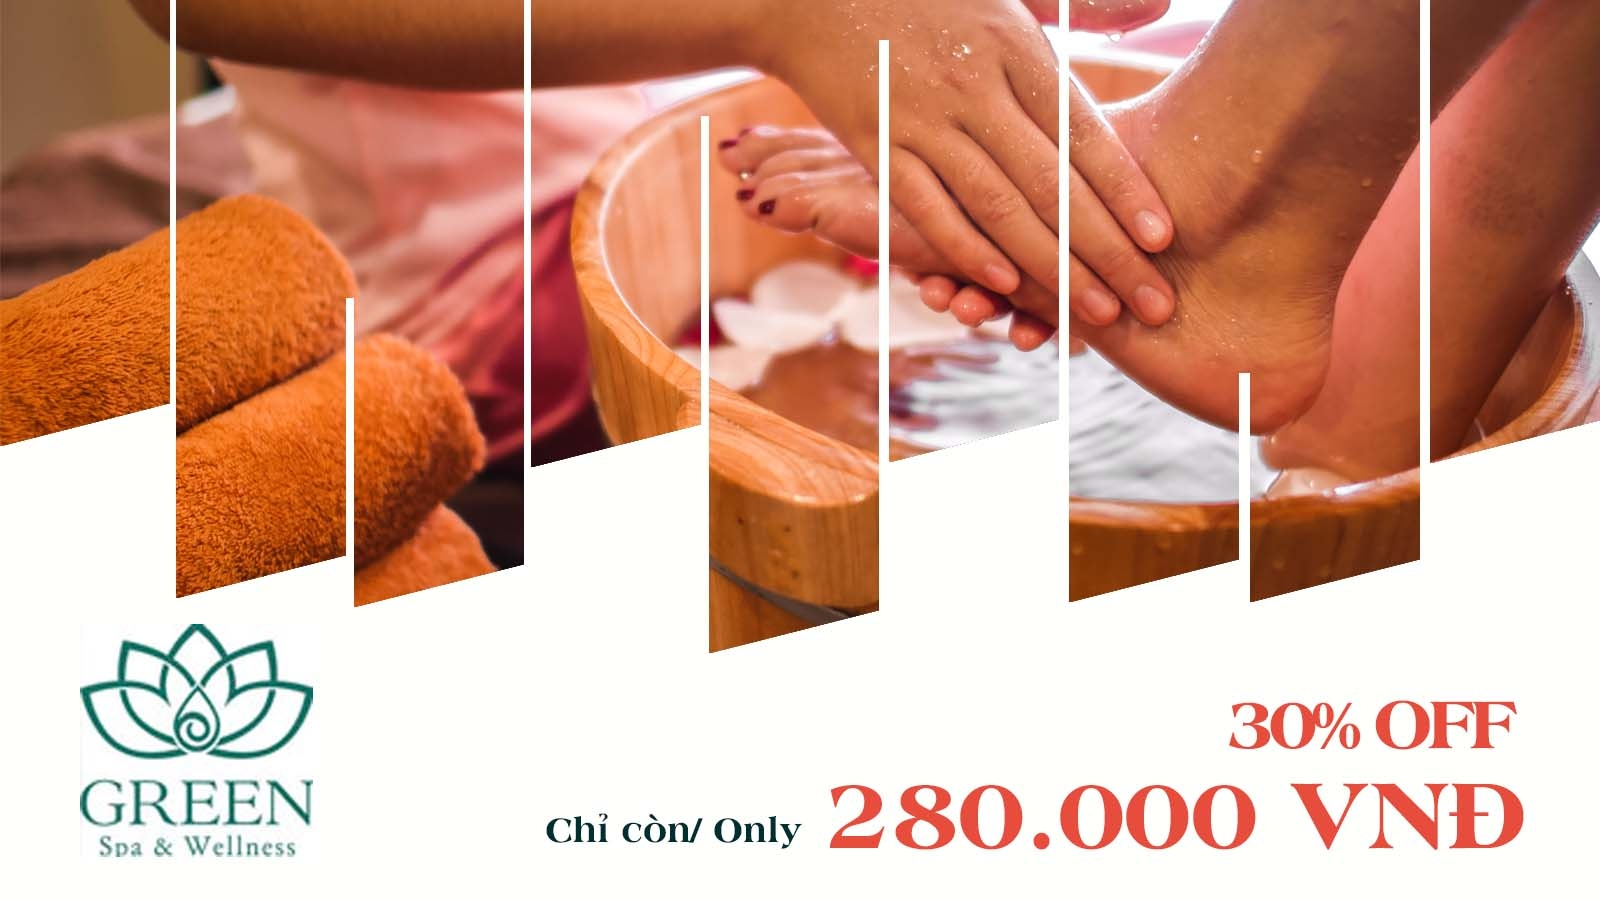 GREEN SPA & WELLNESS - 30% OFF PACKAGE: RELAXATION & FOOT MASSAGE 3